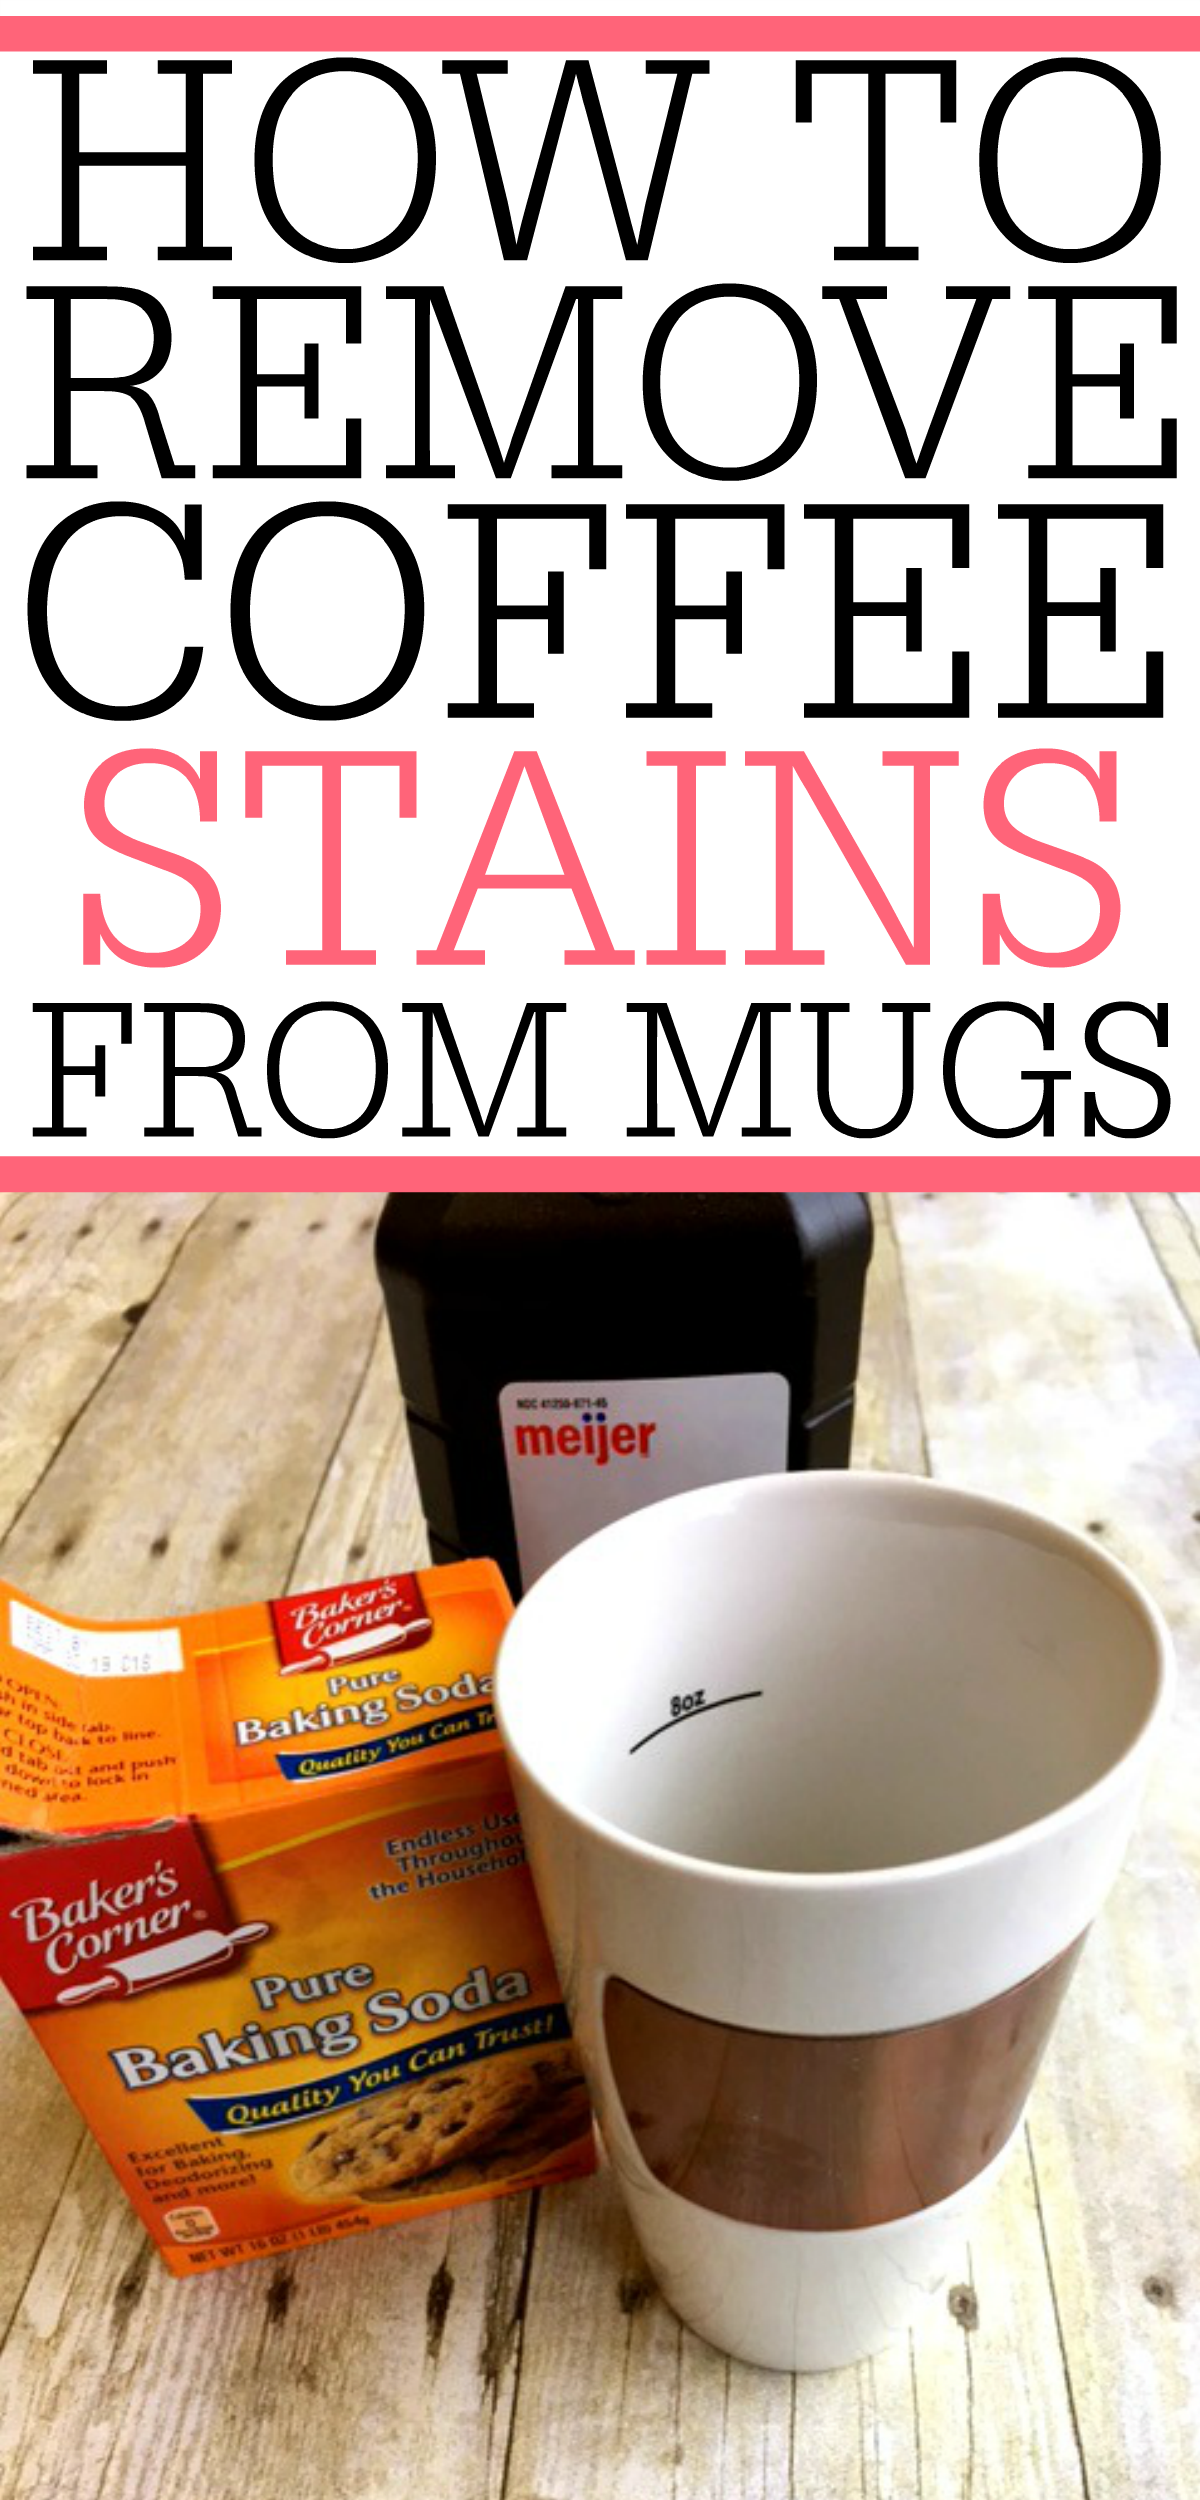 how to remove coffee stains from mugs